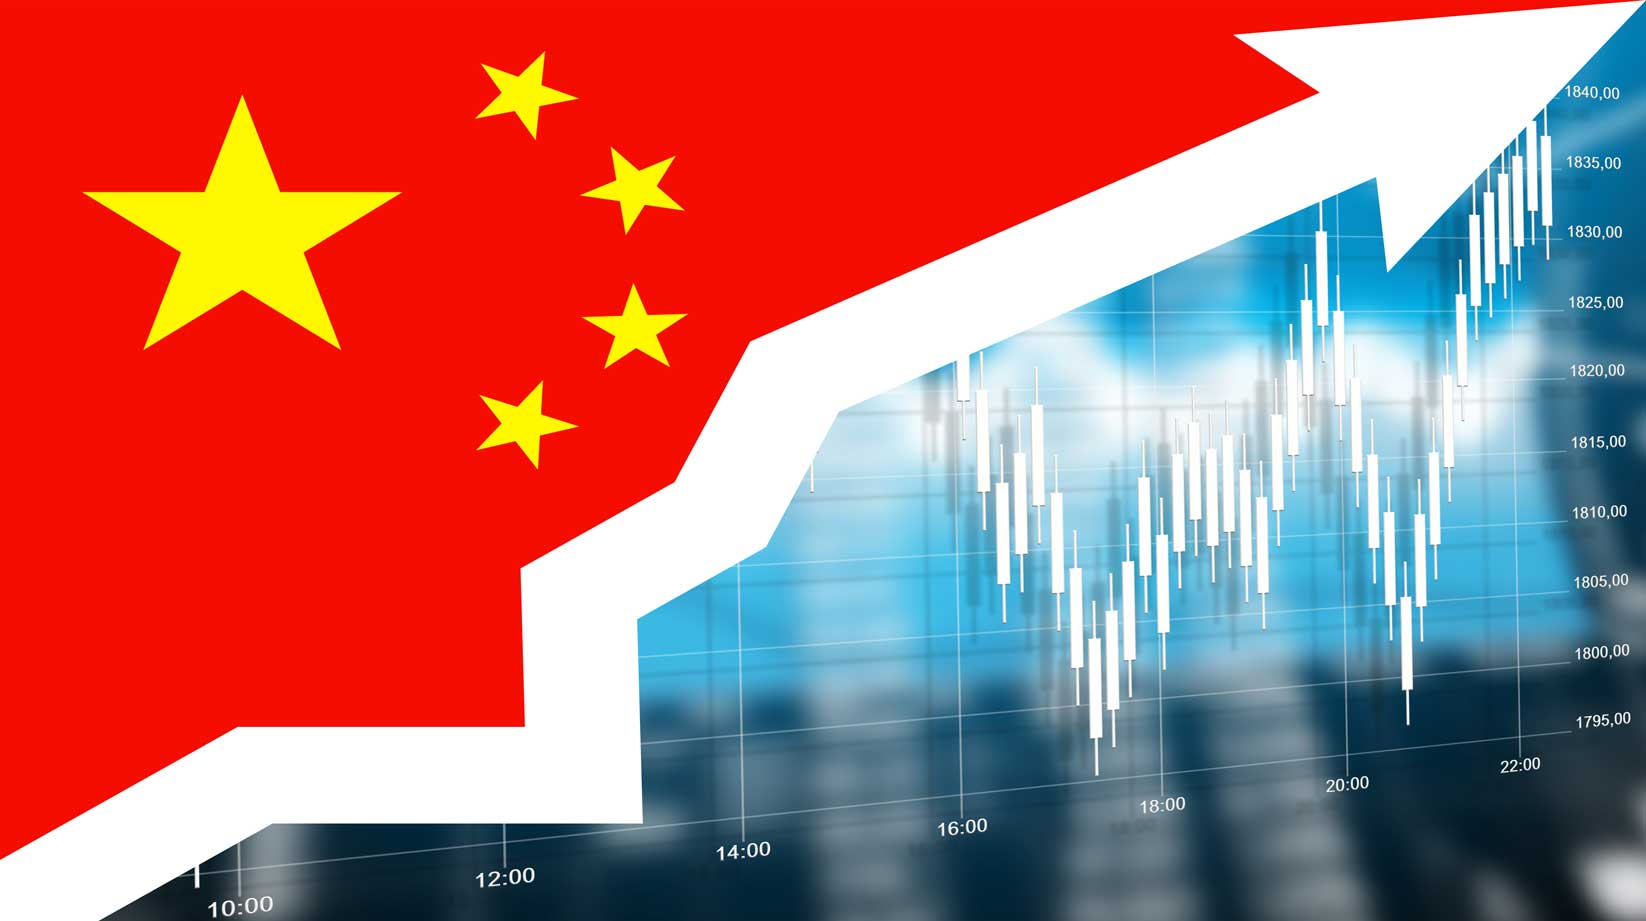 china-stocks-delisting-threat-grows-for-alibaba,-jd.com,-nio-amid-house-vote,-kandi-fraud-allegations